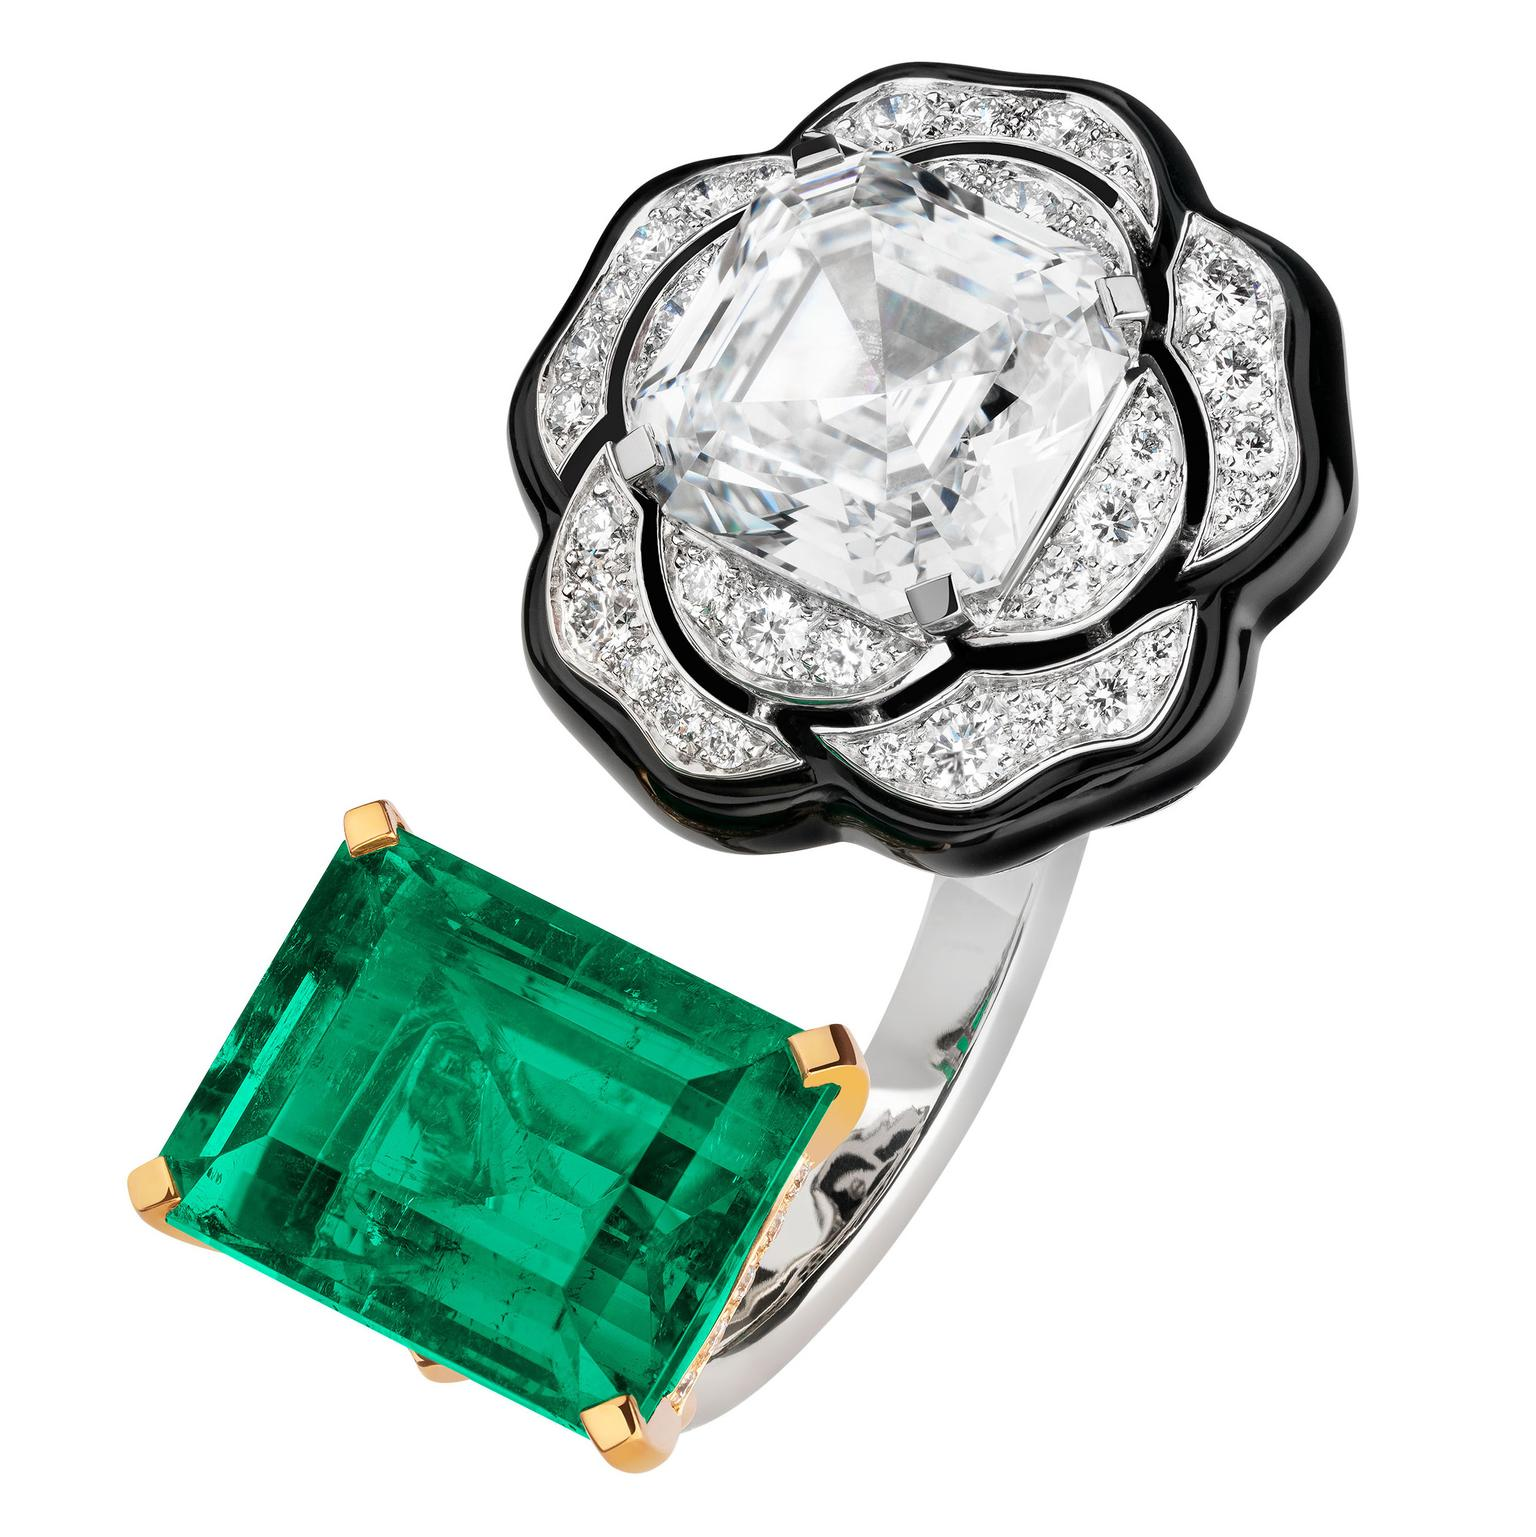 Camélia Baroque ring by Chanel